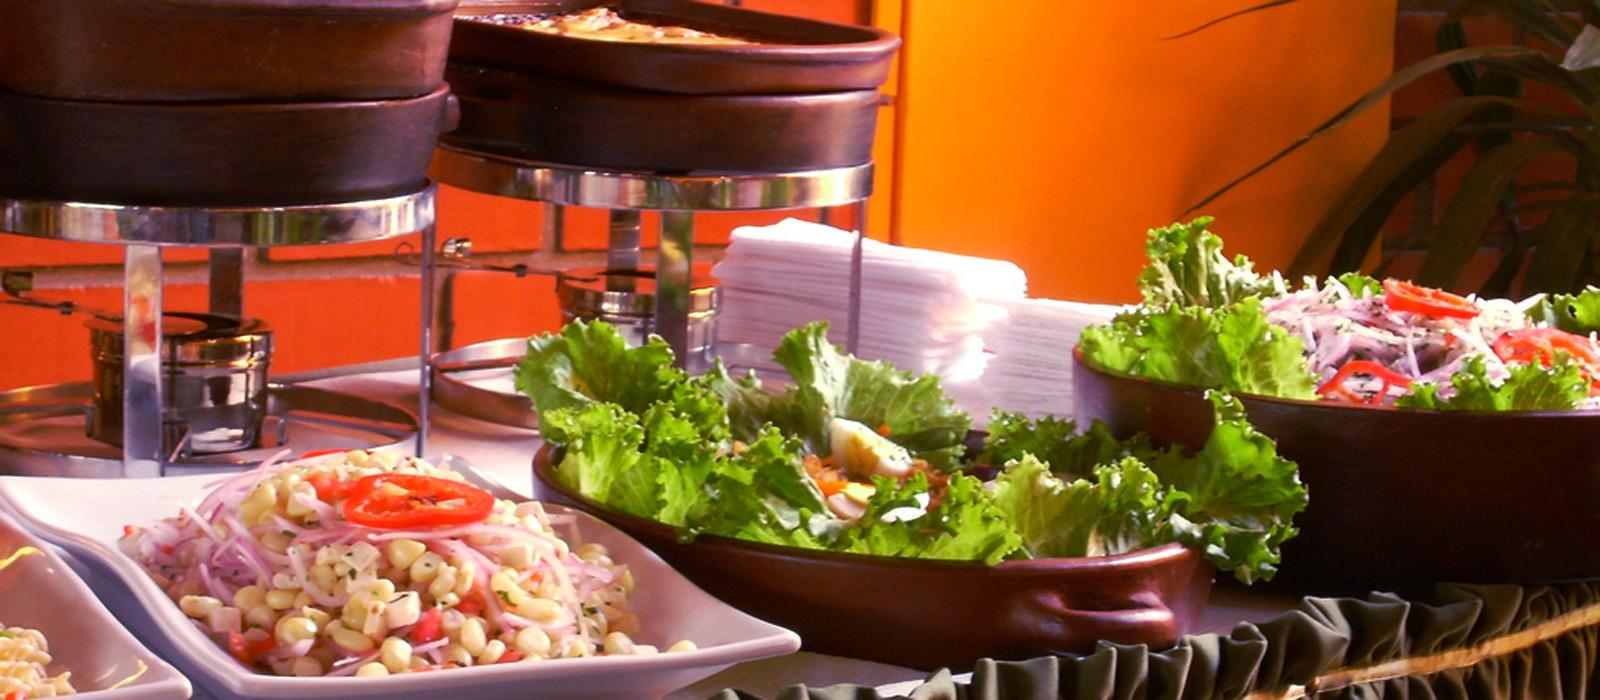 catering-en-lima-buffet-criollo-july-02